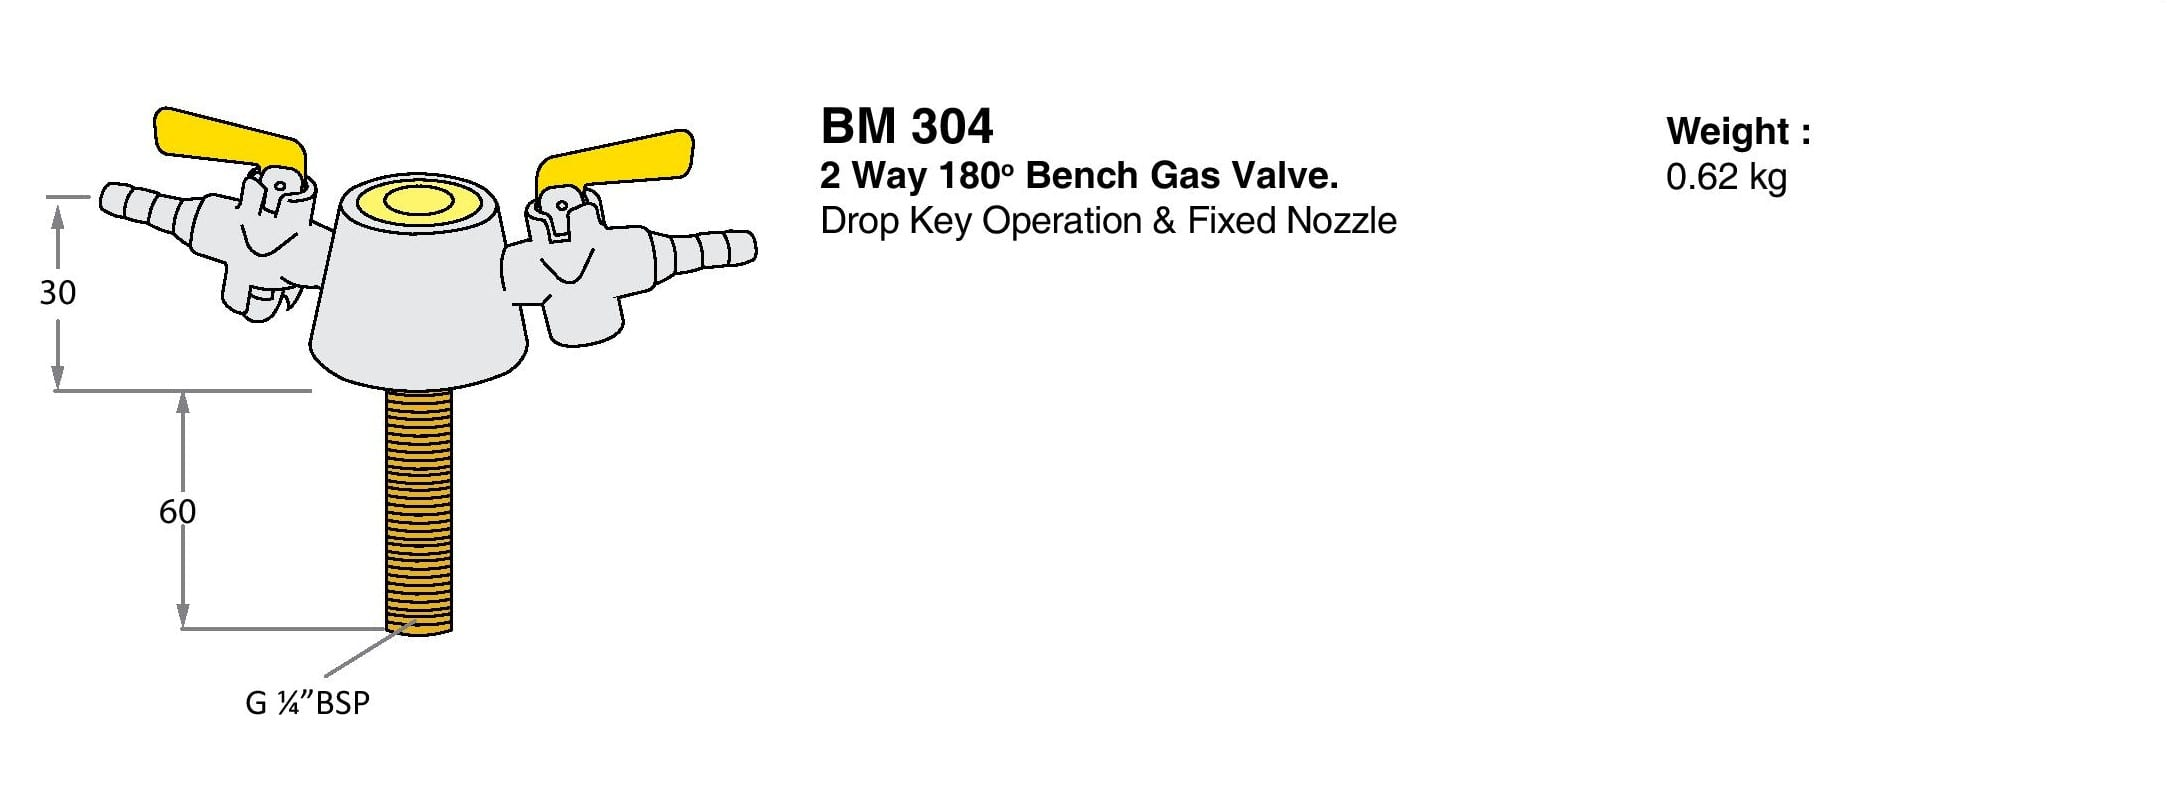 2 Way 180º Bench Gas Valve Drawings